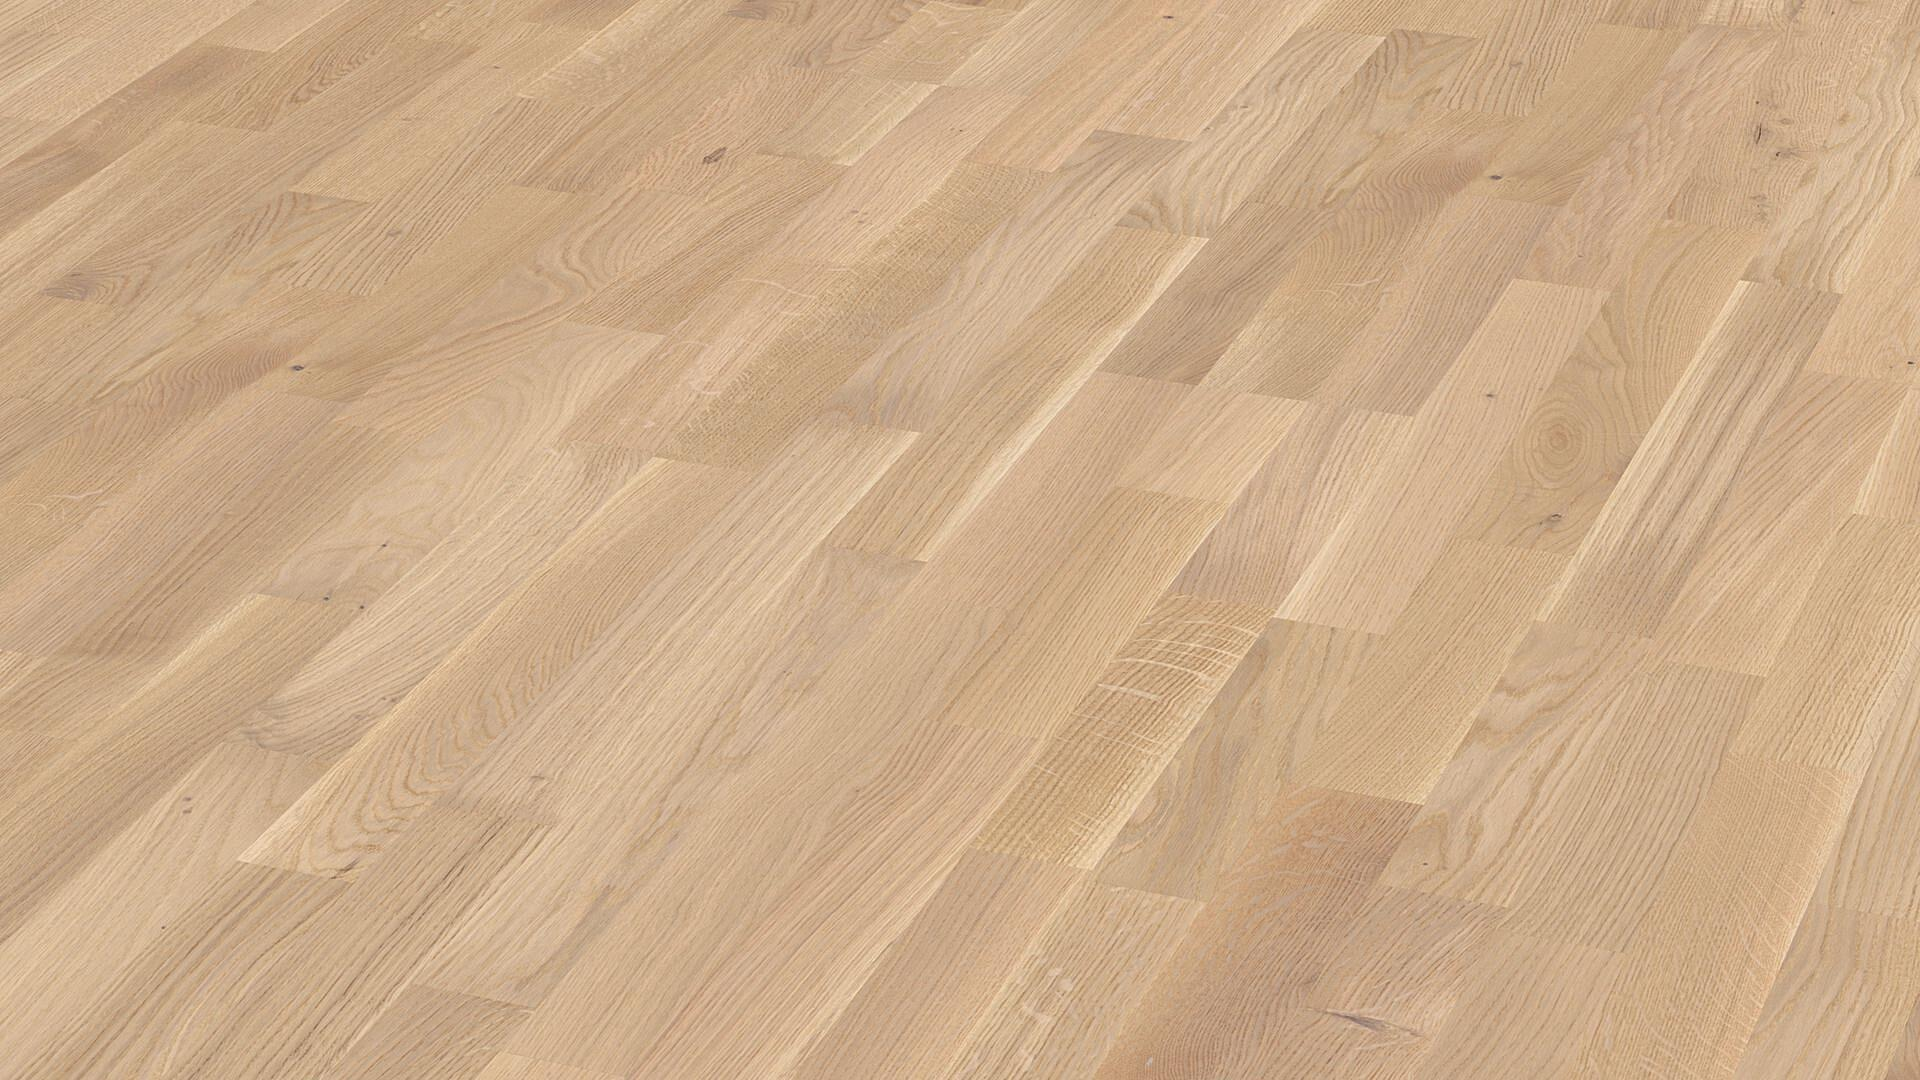 Parquet flooring MeisterParquet. longlife PC 200 Cream oak lively 8326